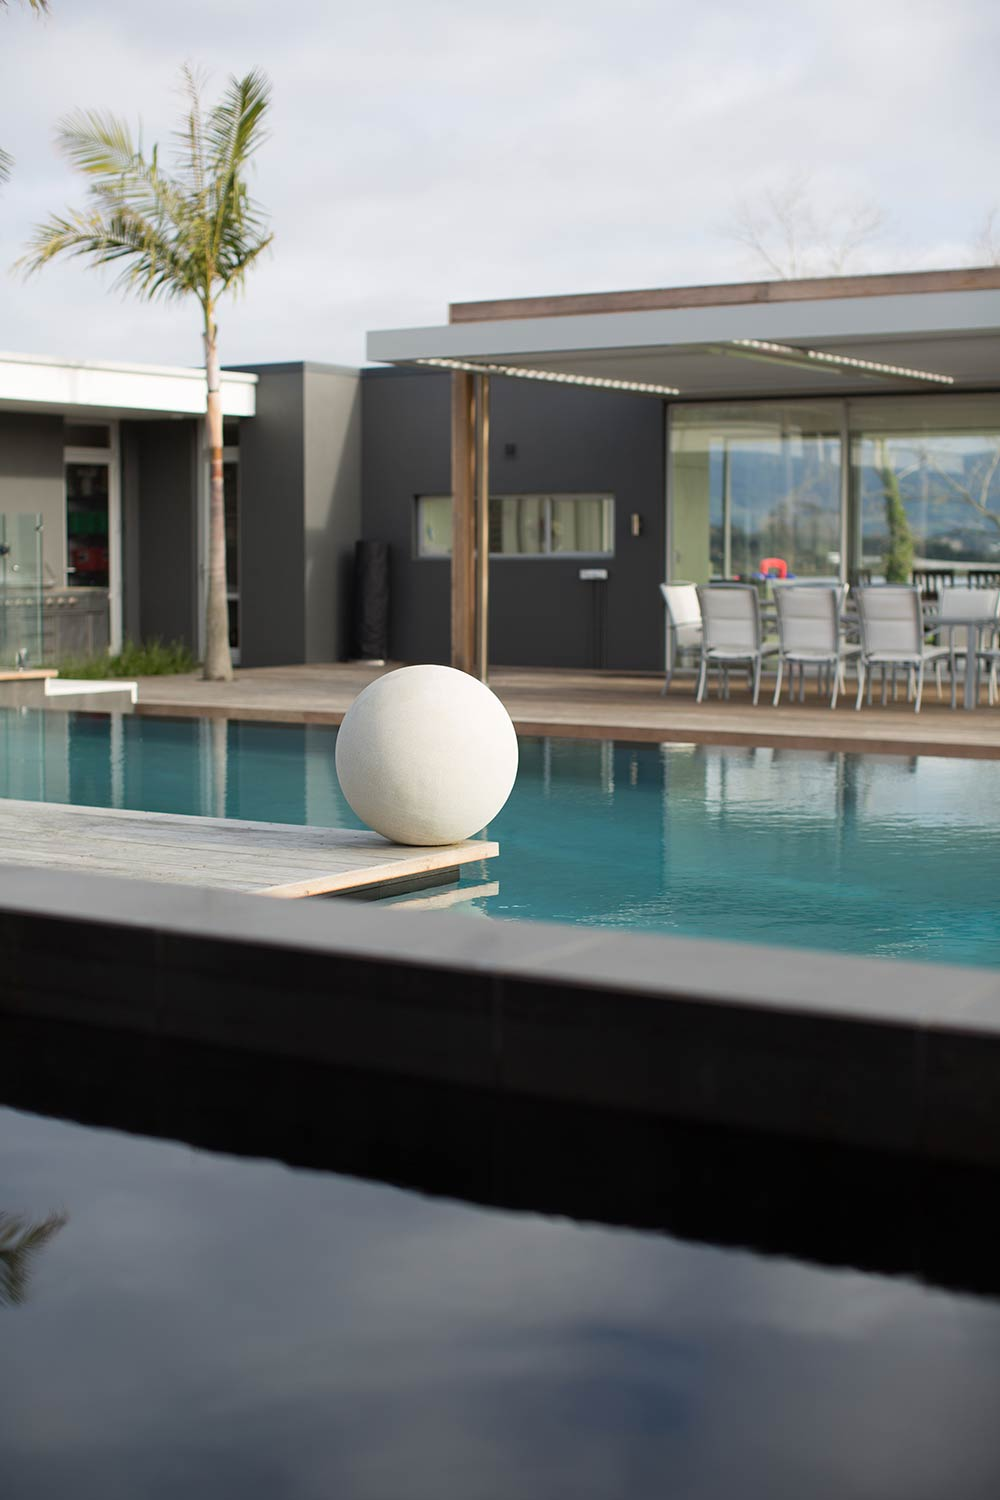 Swimming pool design projects and photos mark cashmore for Pool design company polen